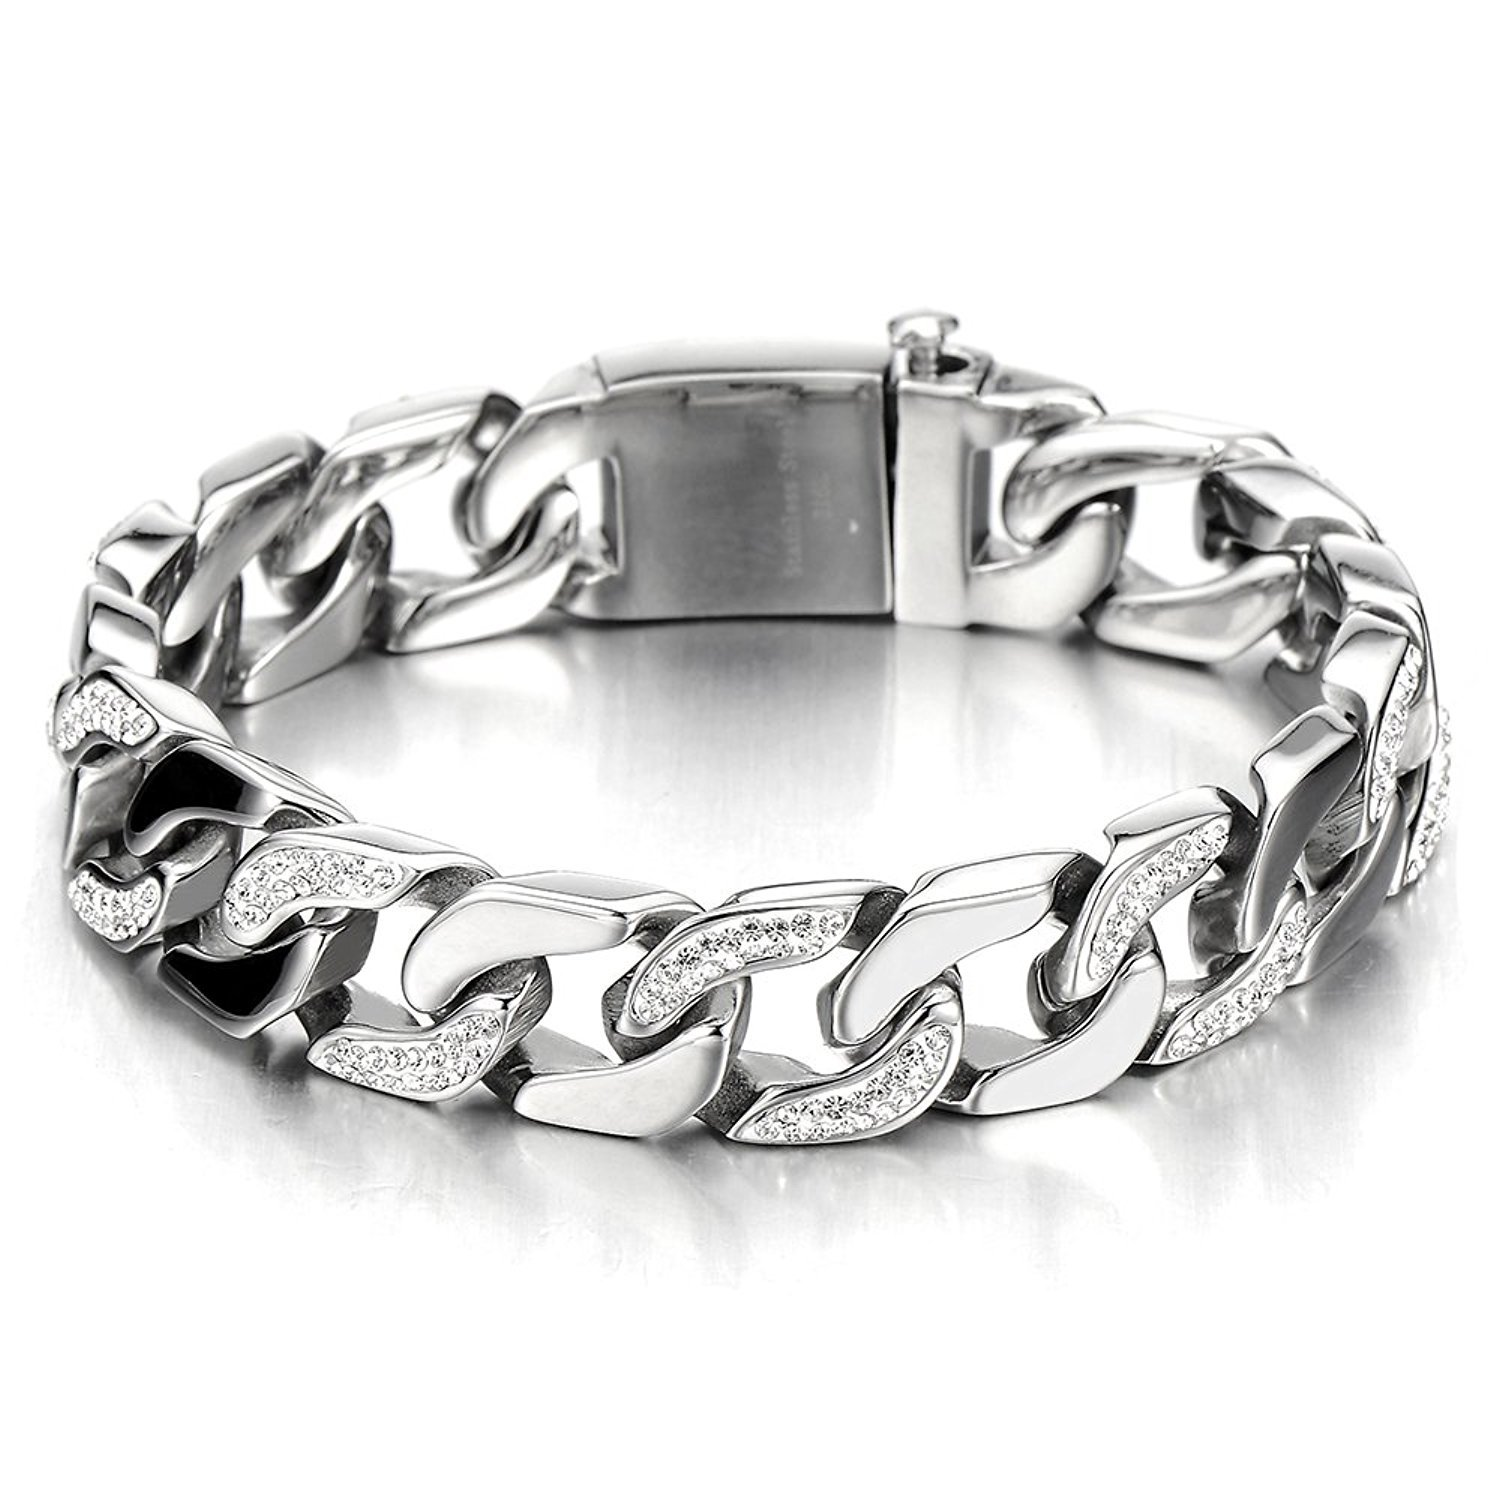 Top Quality Men's Stainless Steel Curb Chain Bracelet Silver Color High Polished with Cubic Zirconia COOLSTEELANDBEYOND MB-879A